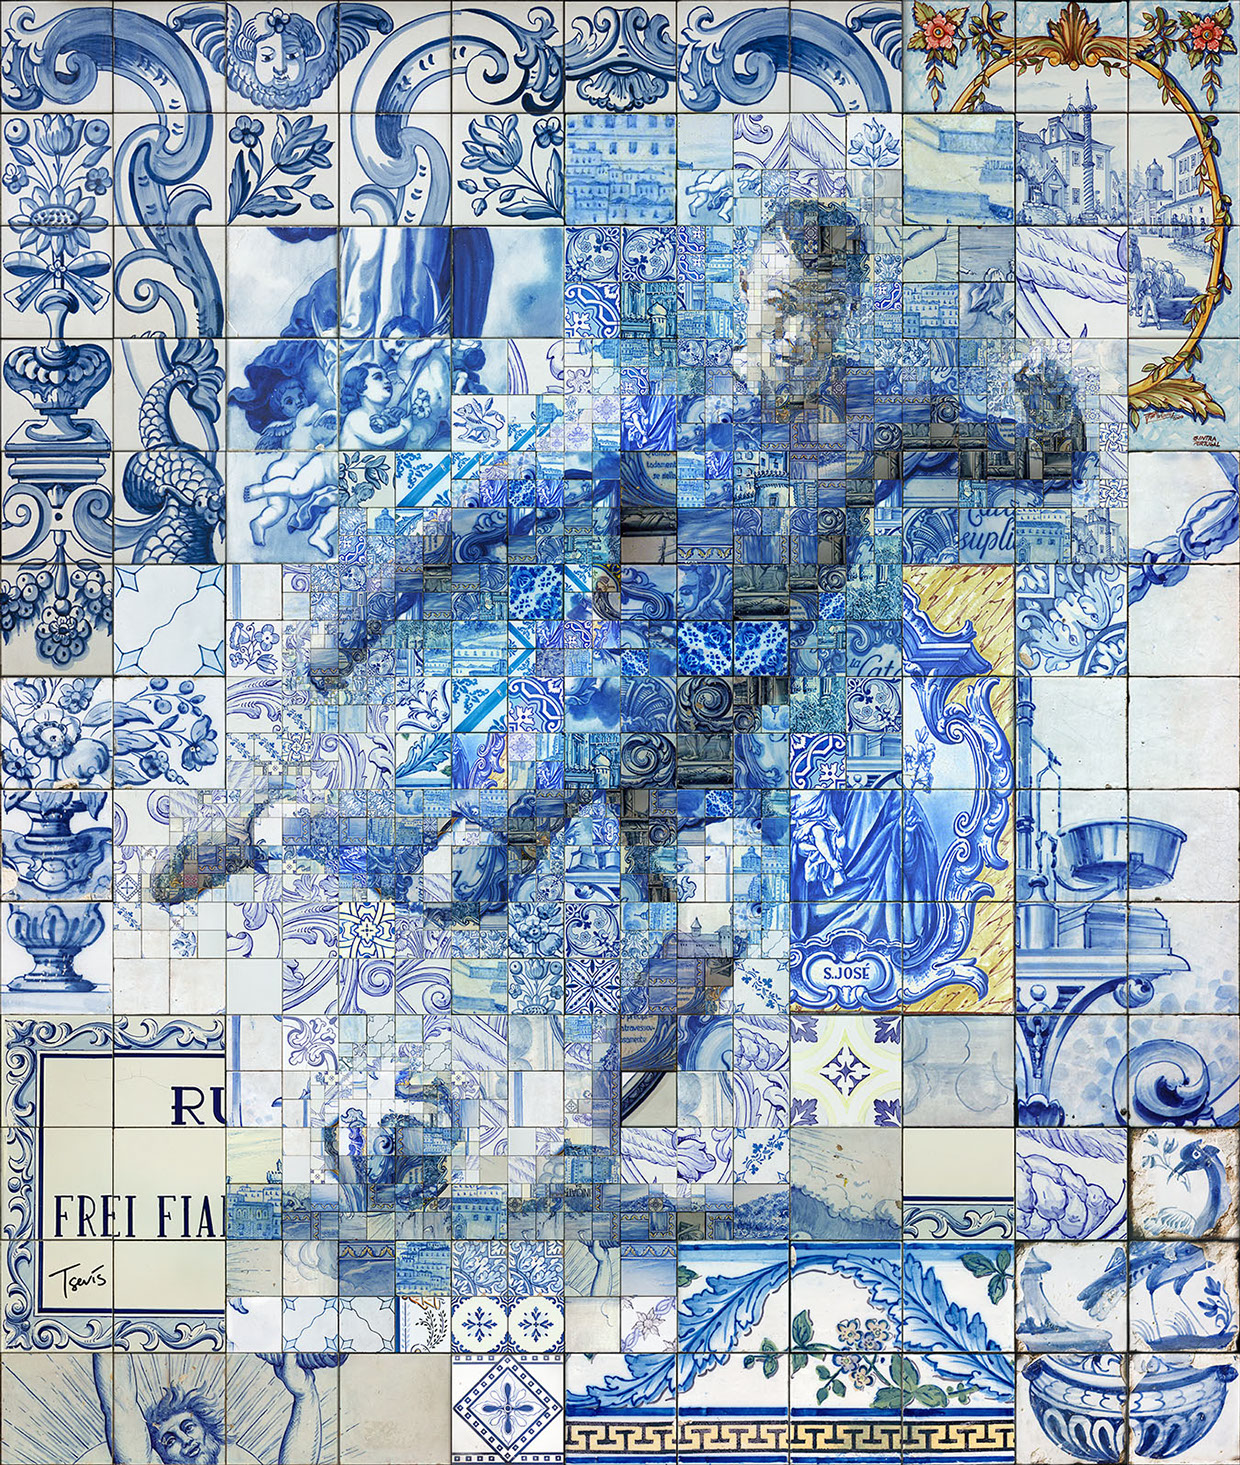 Made In Portugal Tile World Cultural Heritage And Source Of - Portugal map size